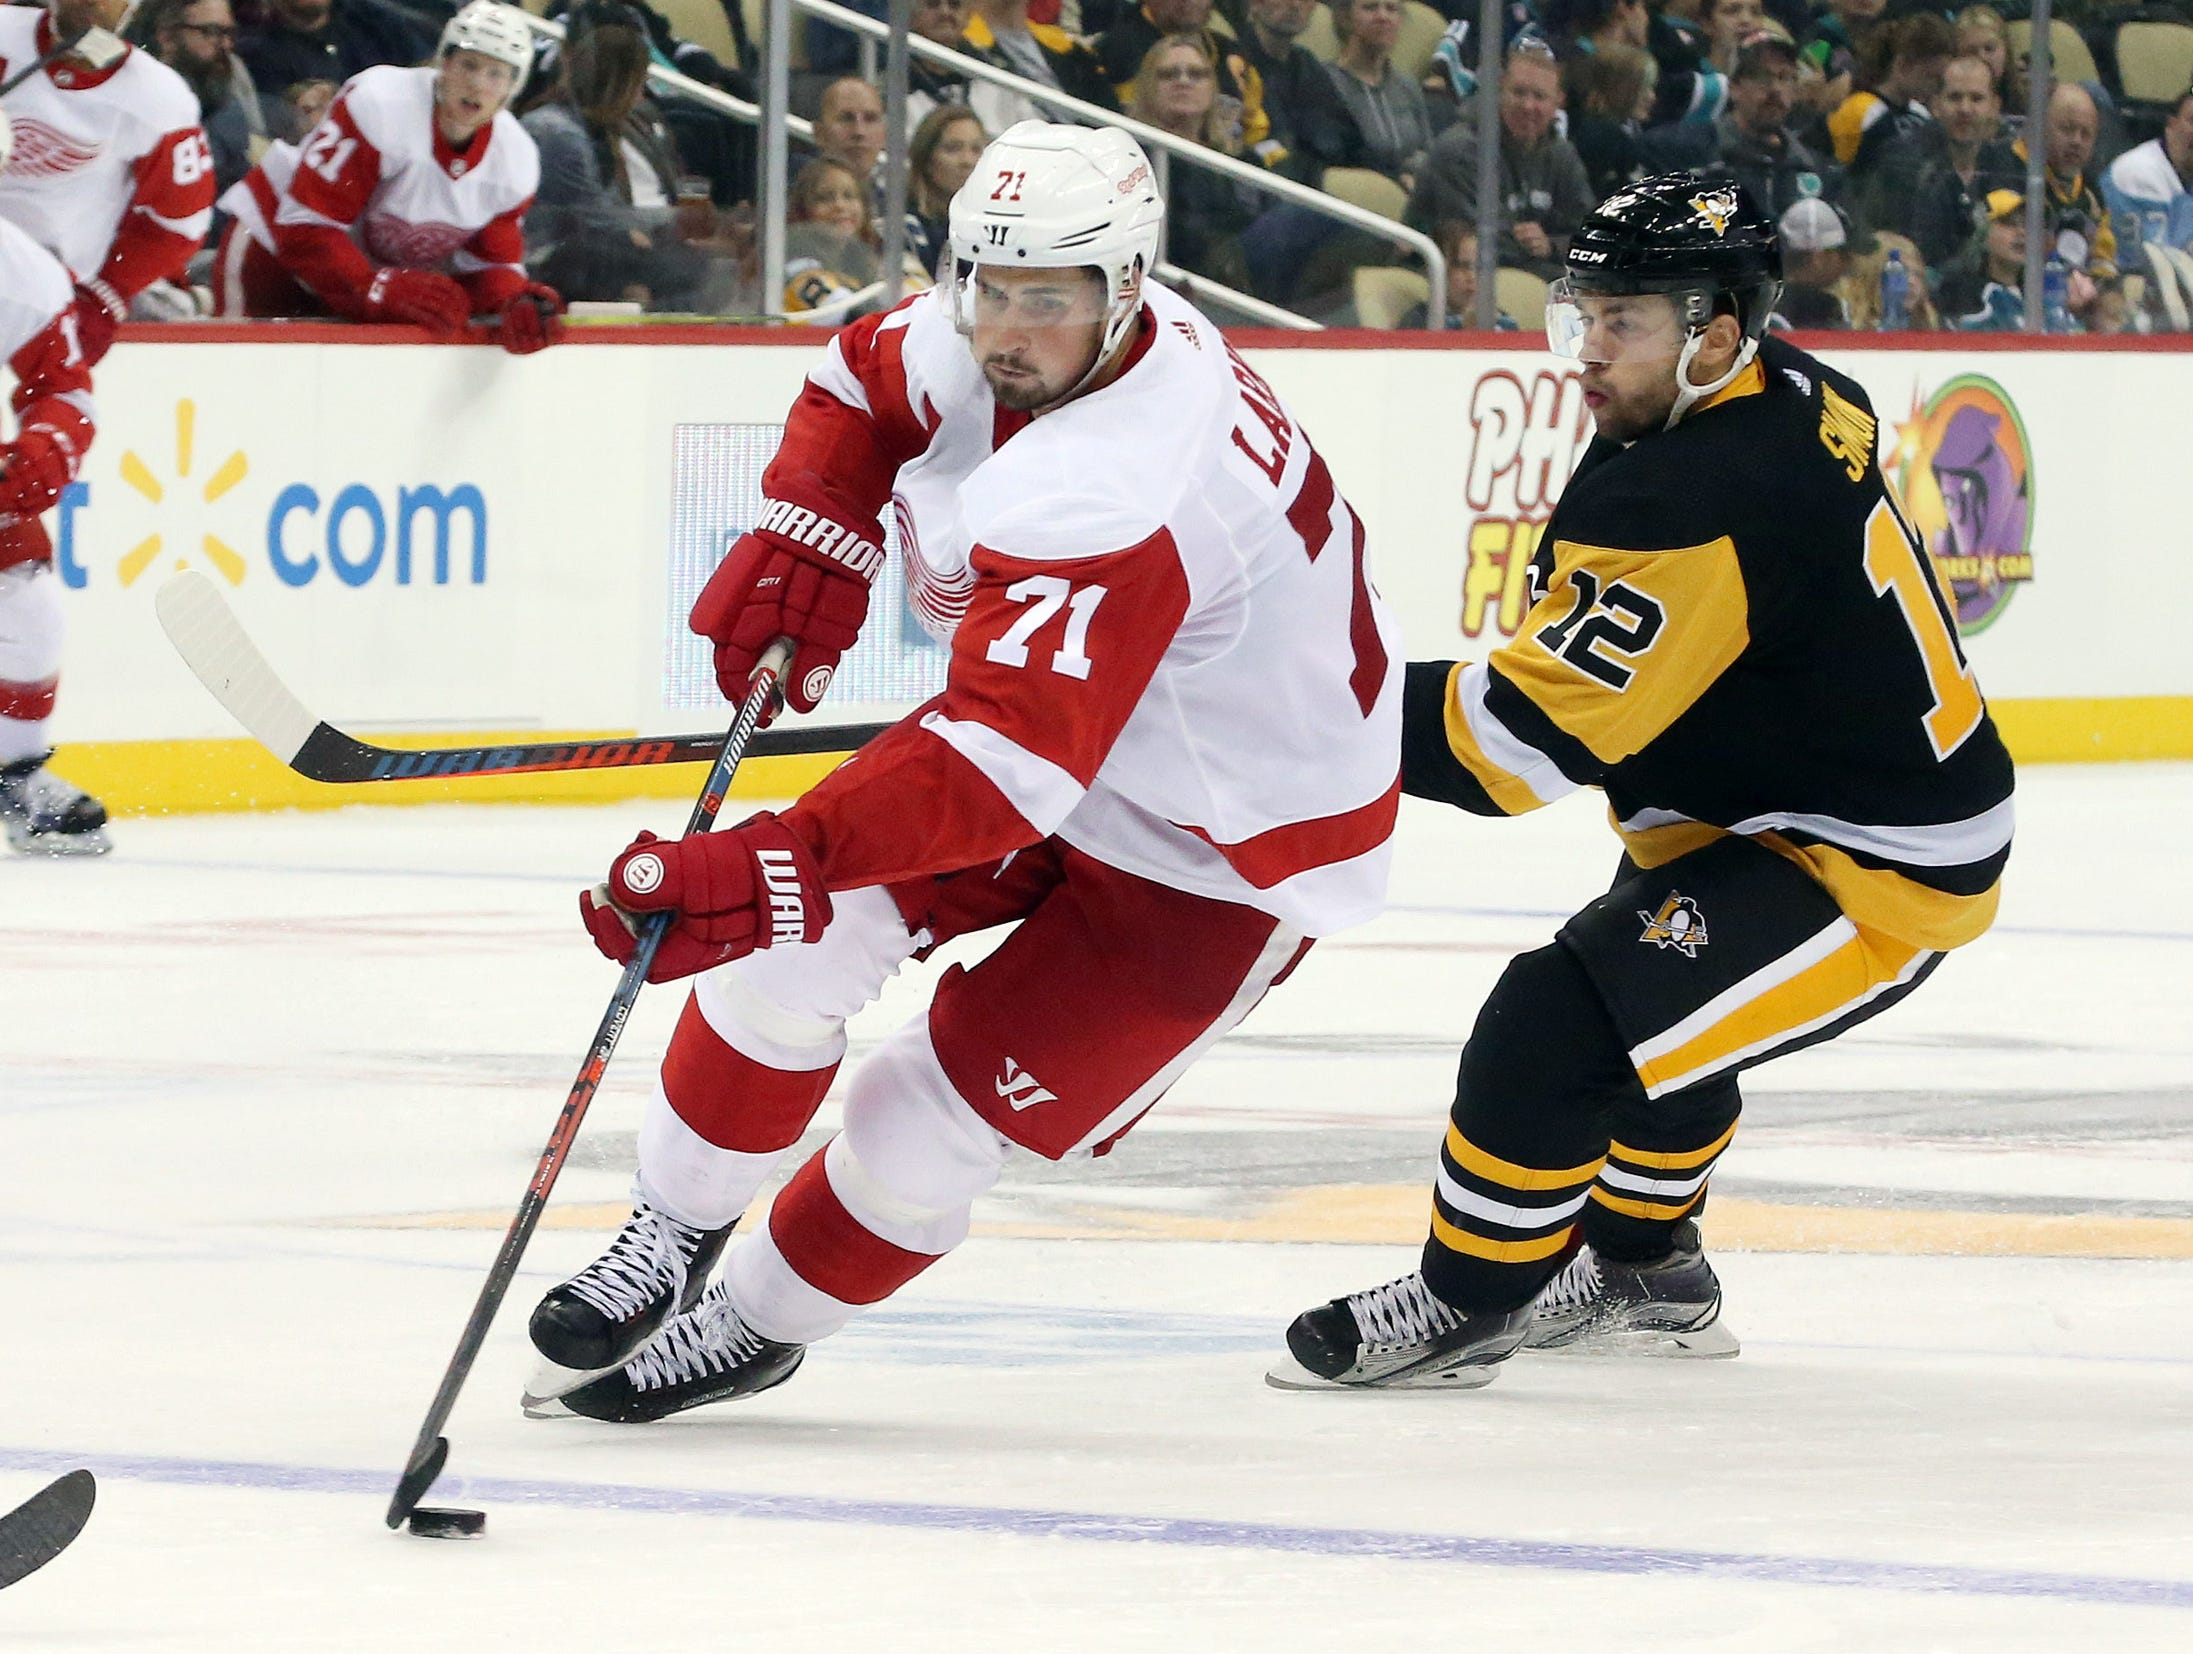 Red Wings center Dylan Larkin skates with the puck into the offensive zone ahead of Penguins center Dominik Simon during the third period of the Wings' 3-2 preseason win over the Penguins on Sunday, Sept. 23, 2018, in Pittsburgh.